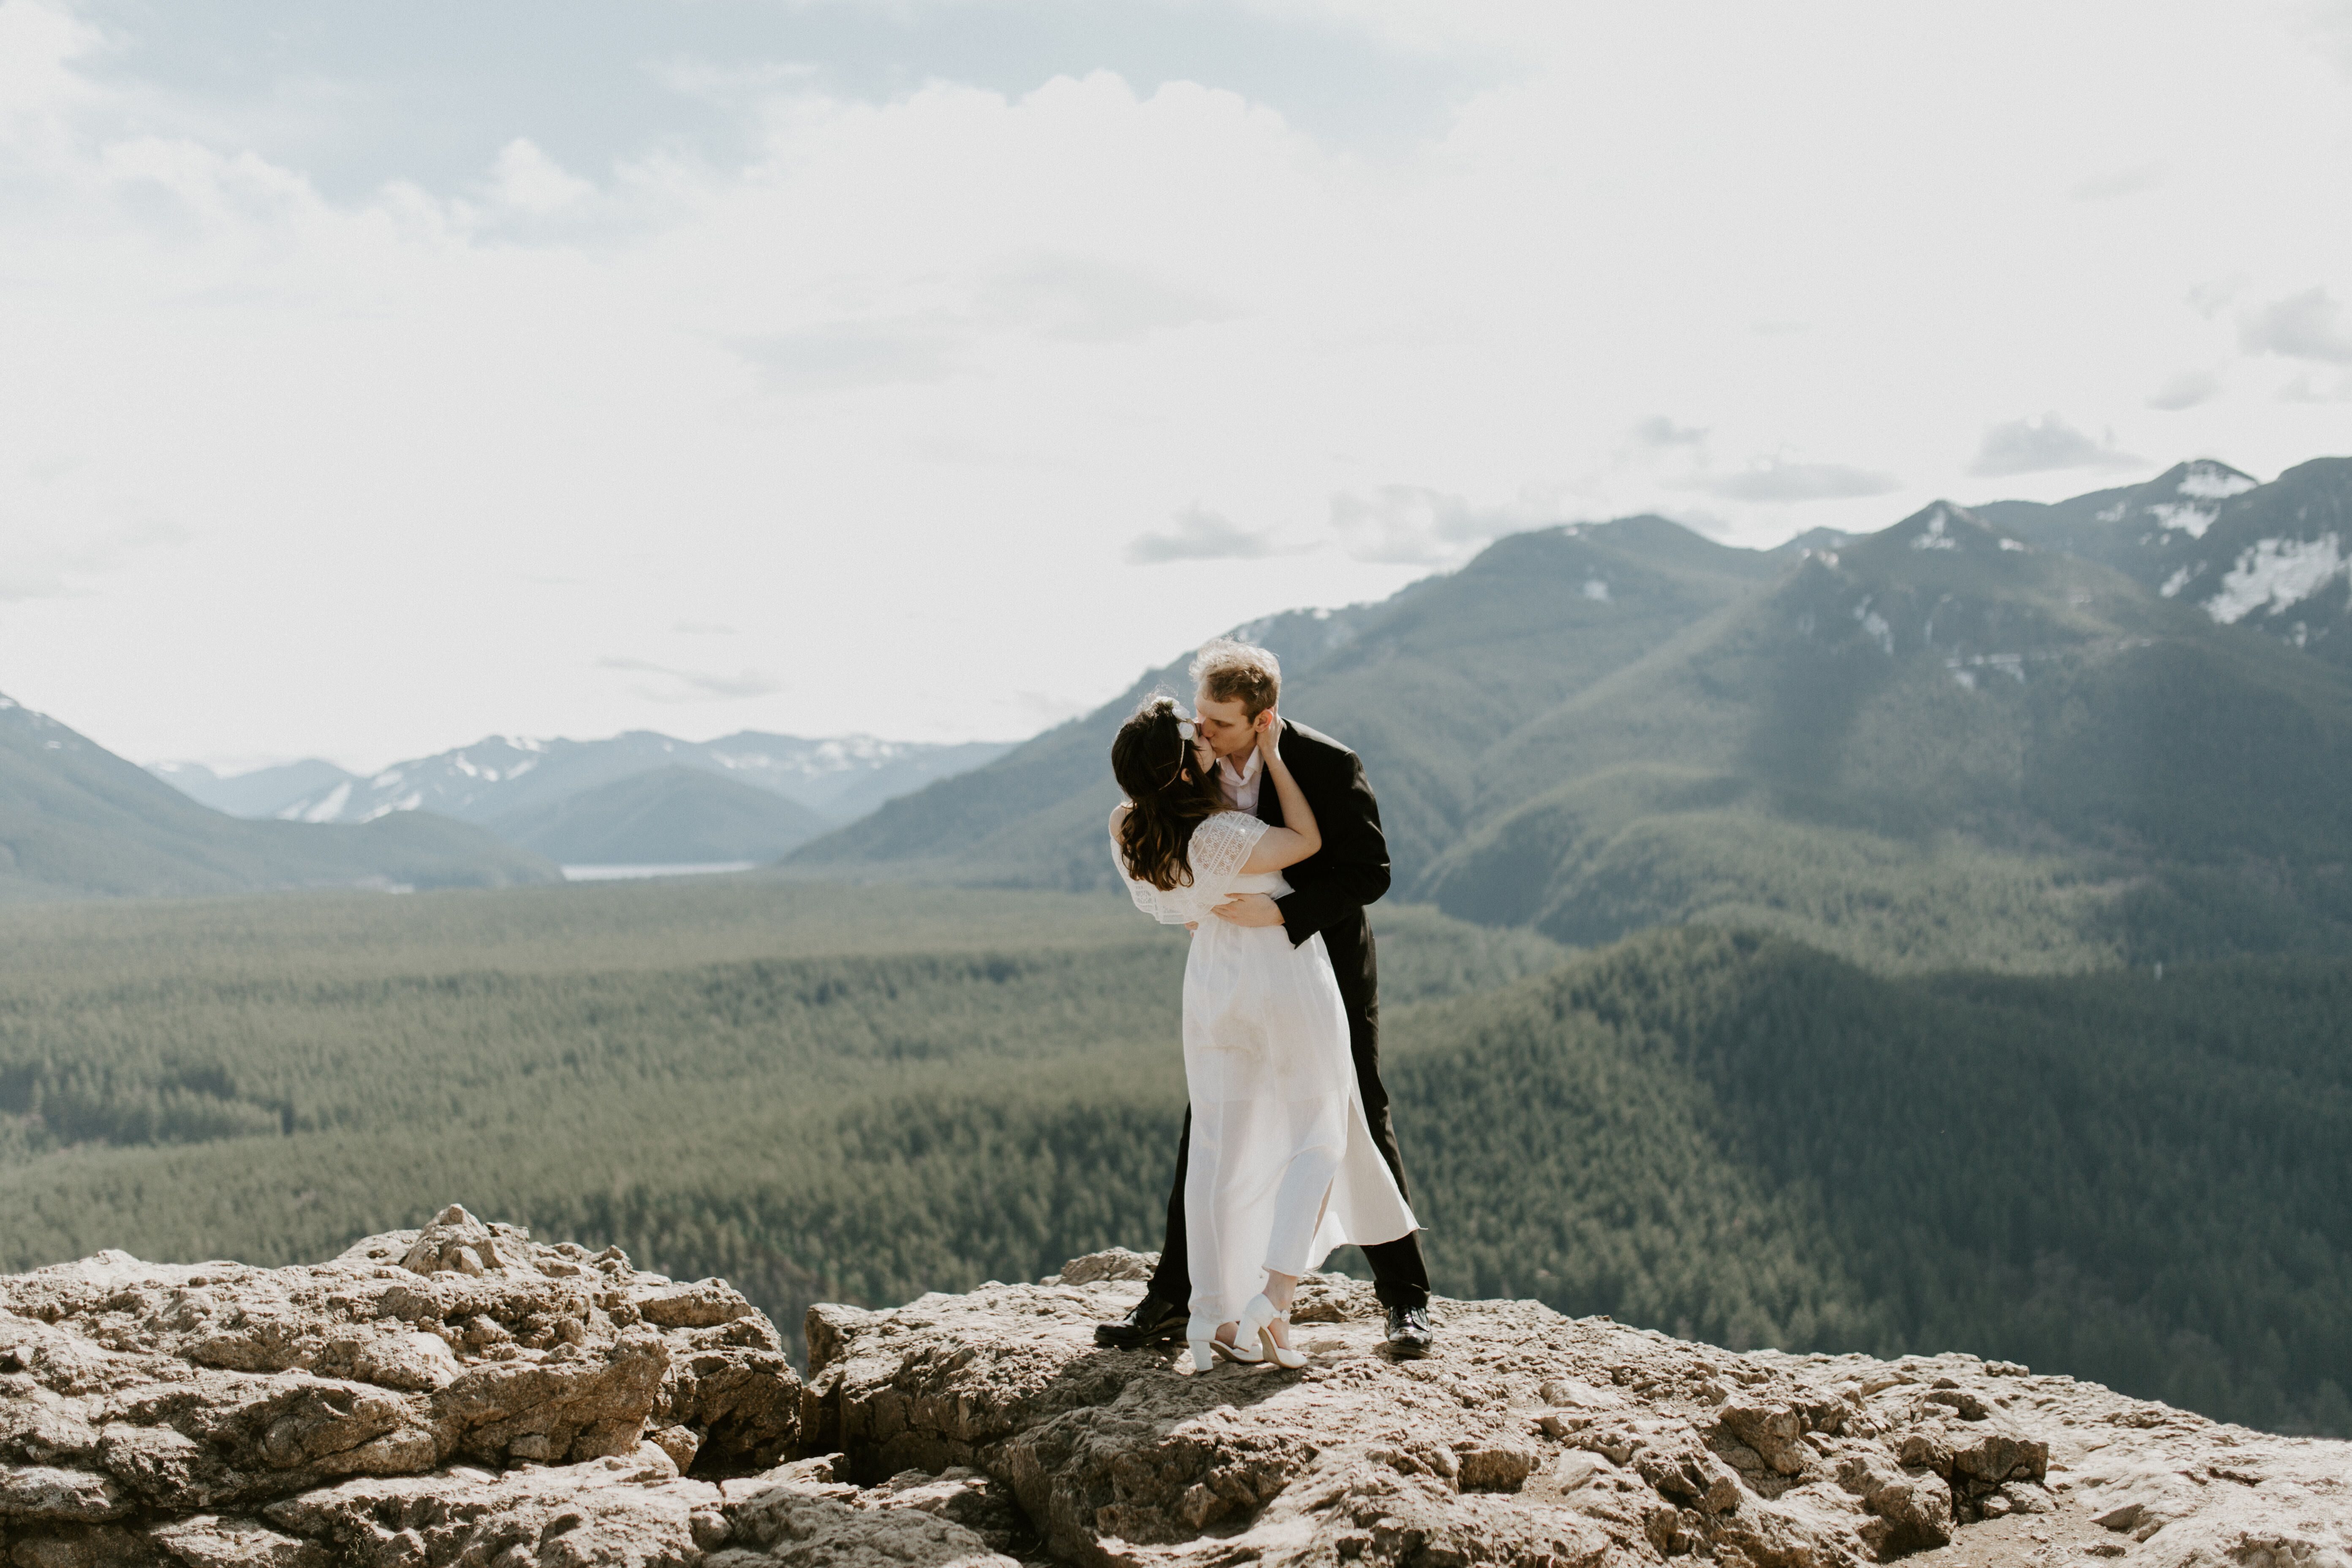 Michael and Winnifred kissing while standing near Rattlesnake Ledge, overlooking Washington.